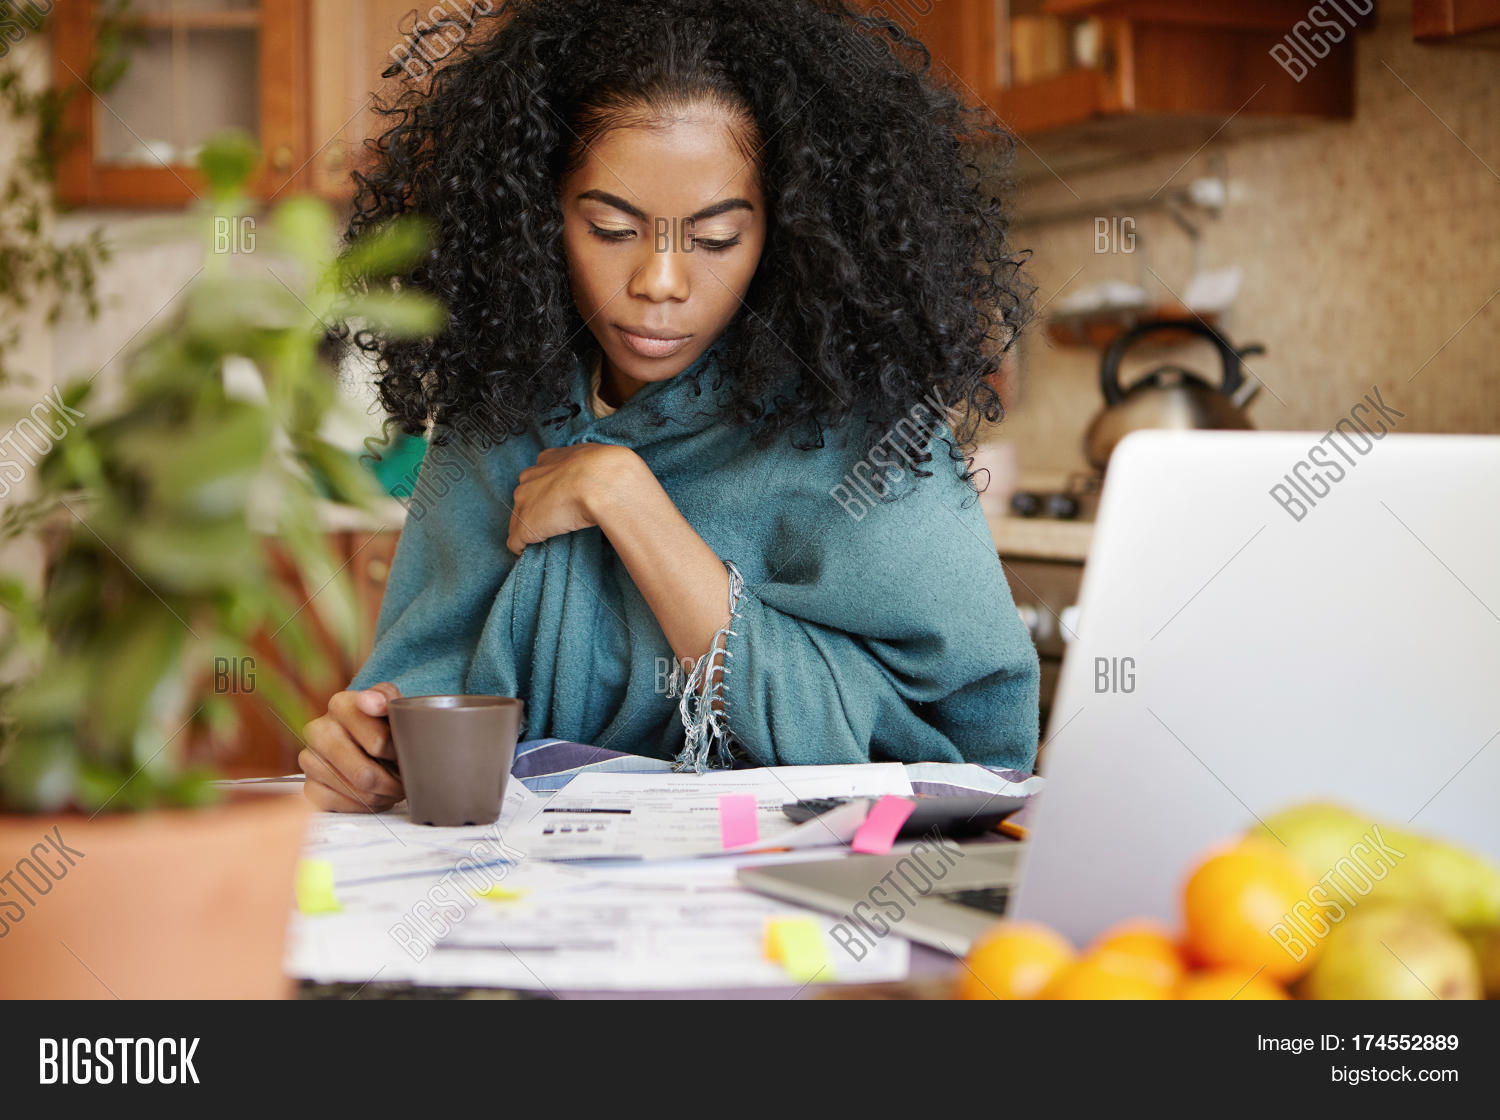 Upset dark-skinned housewife with Afro hairstyle having coffee while managing domestic budget late at night calculating family expenses paying bills online having tired and concentrated look